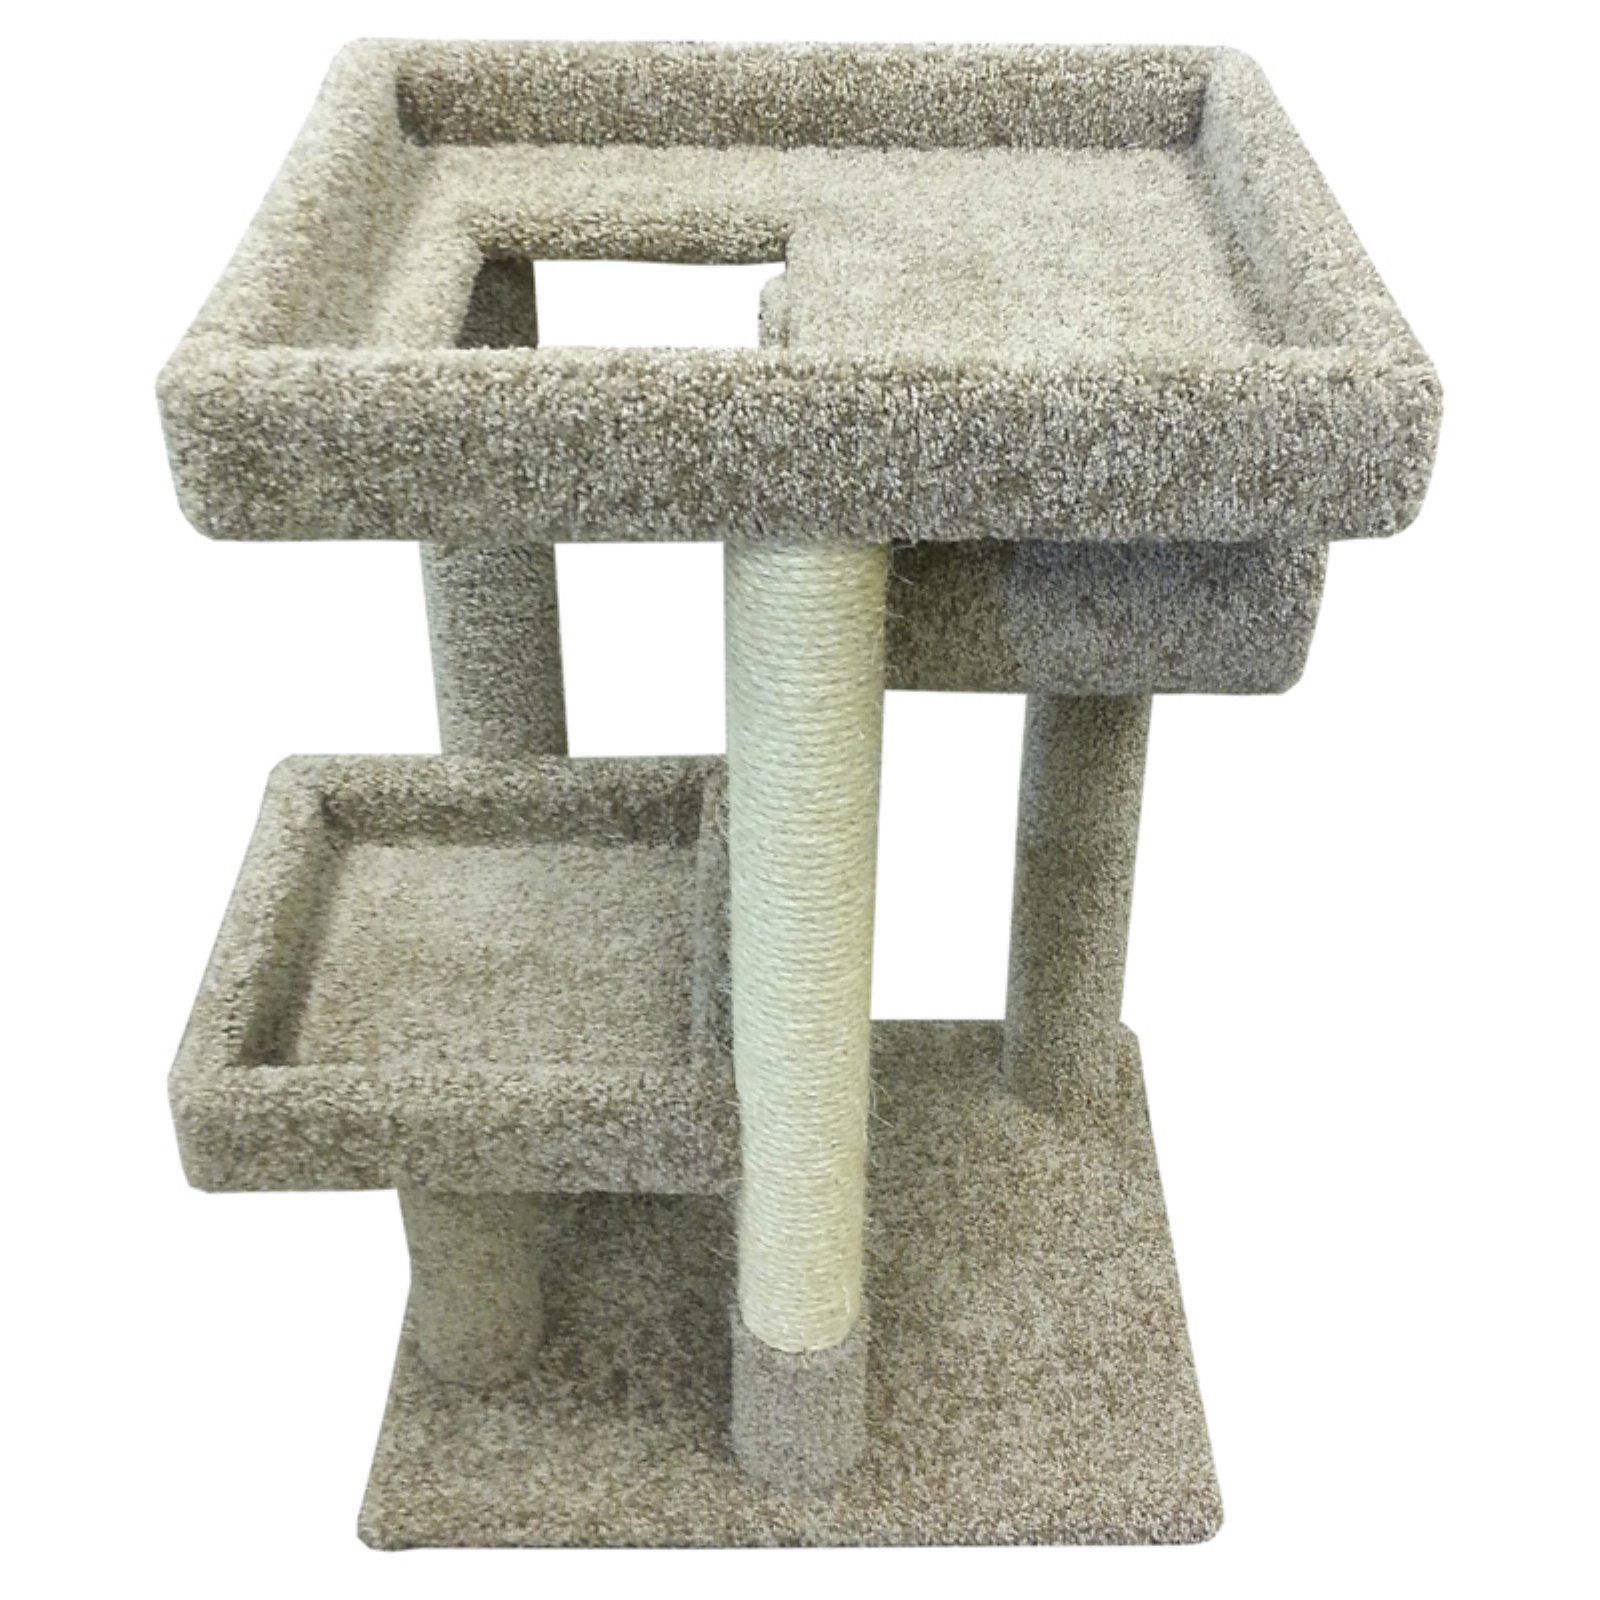 New Cat Condos 37 in. Cat Scratching Lounger